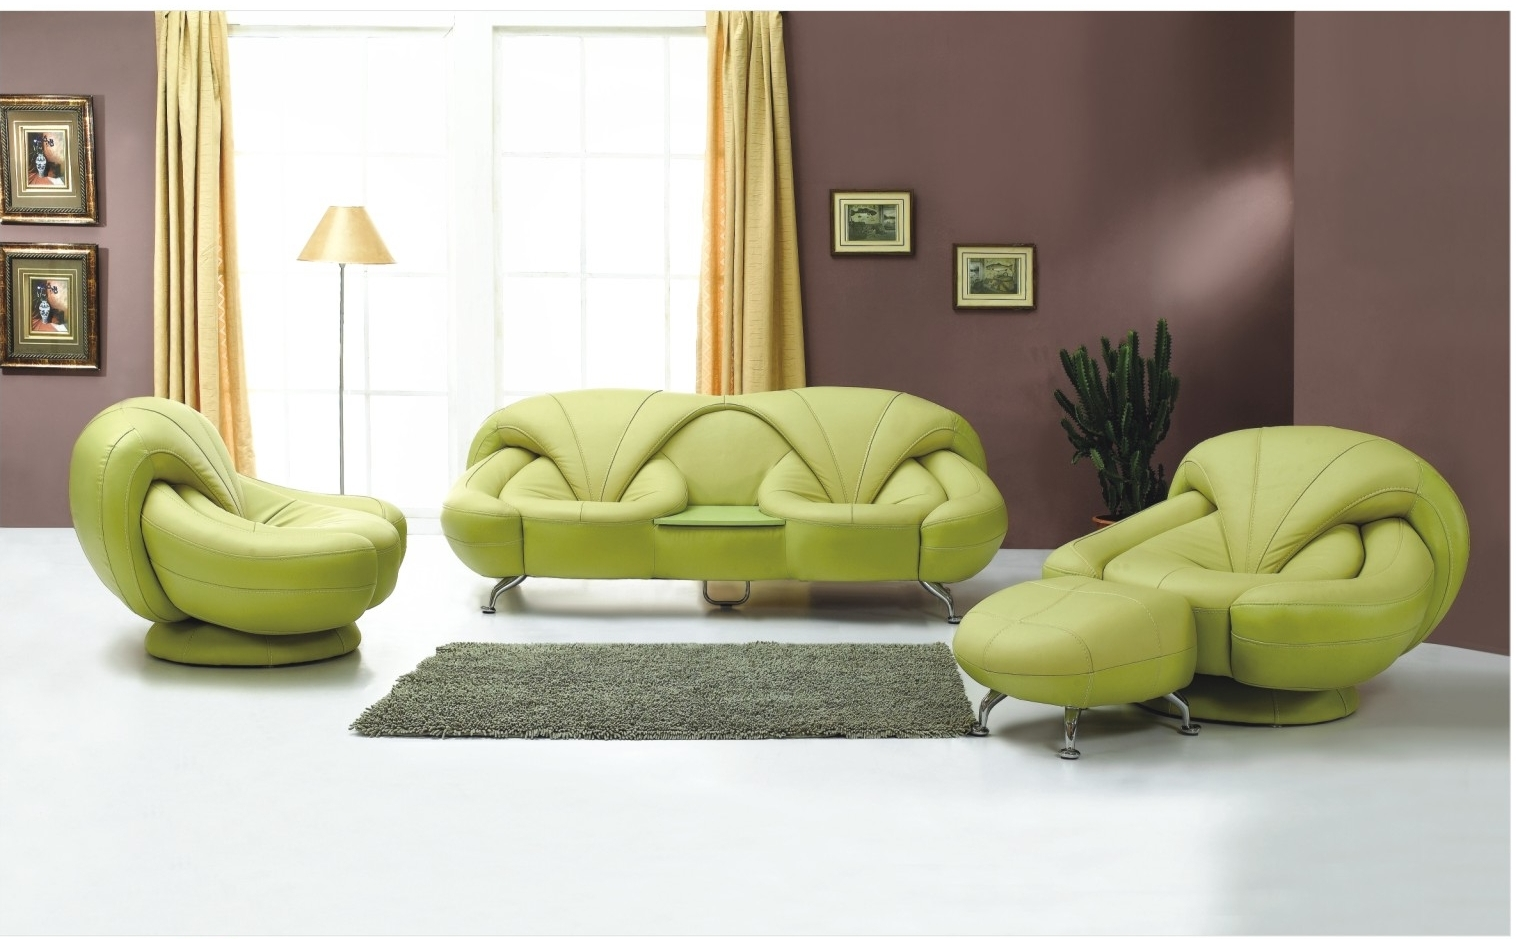 Modern living room furniture designs ideas an interior for Sofa set designs for living room